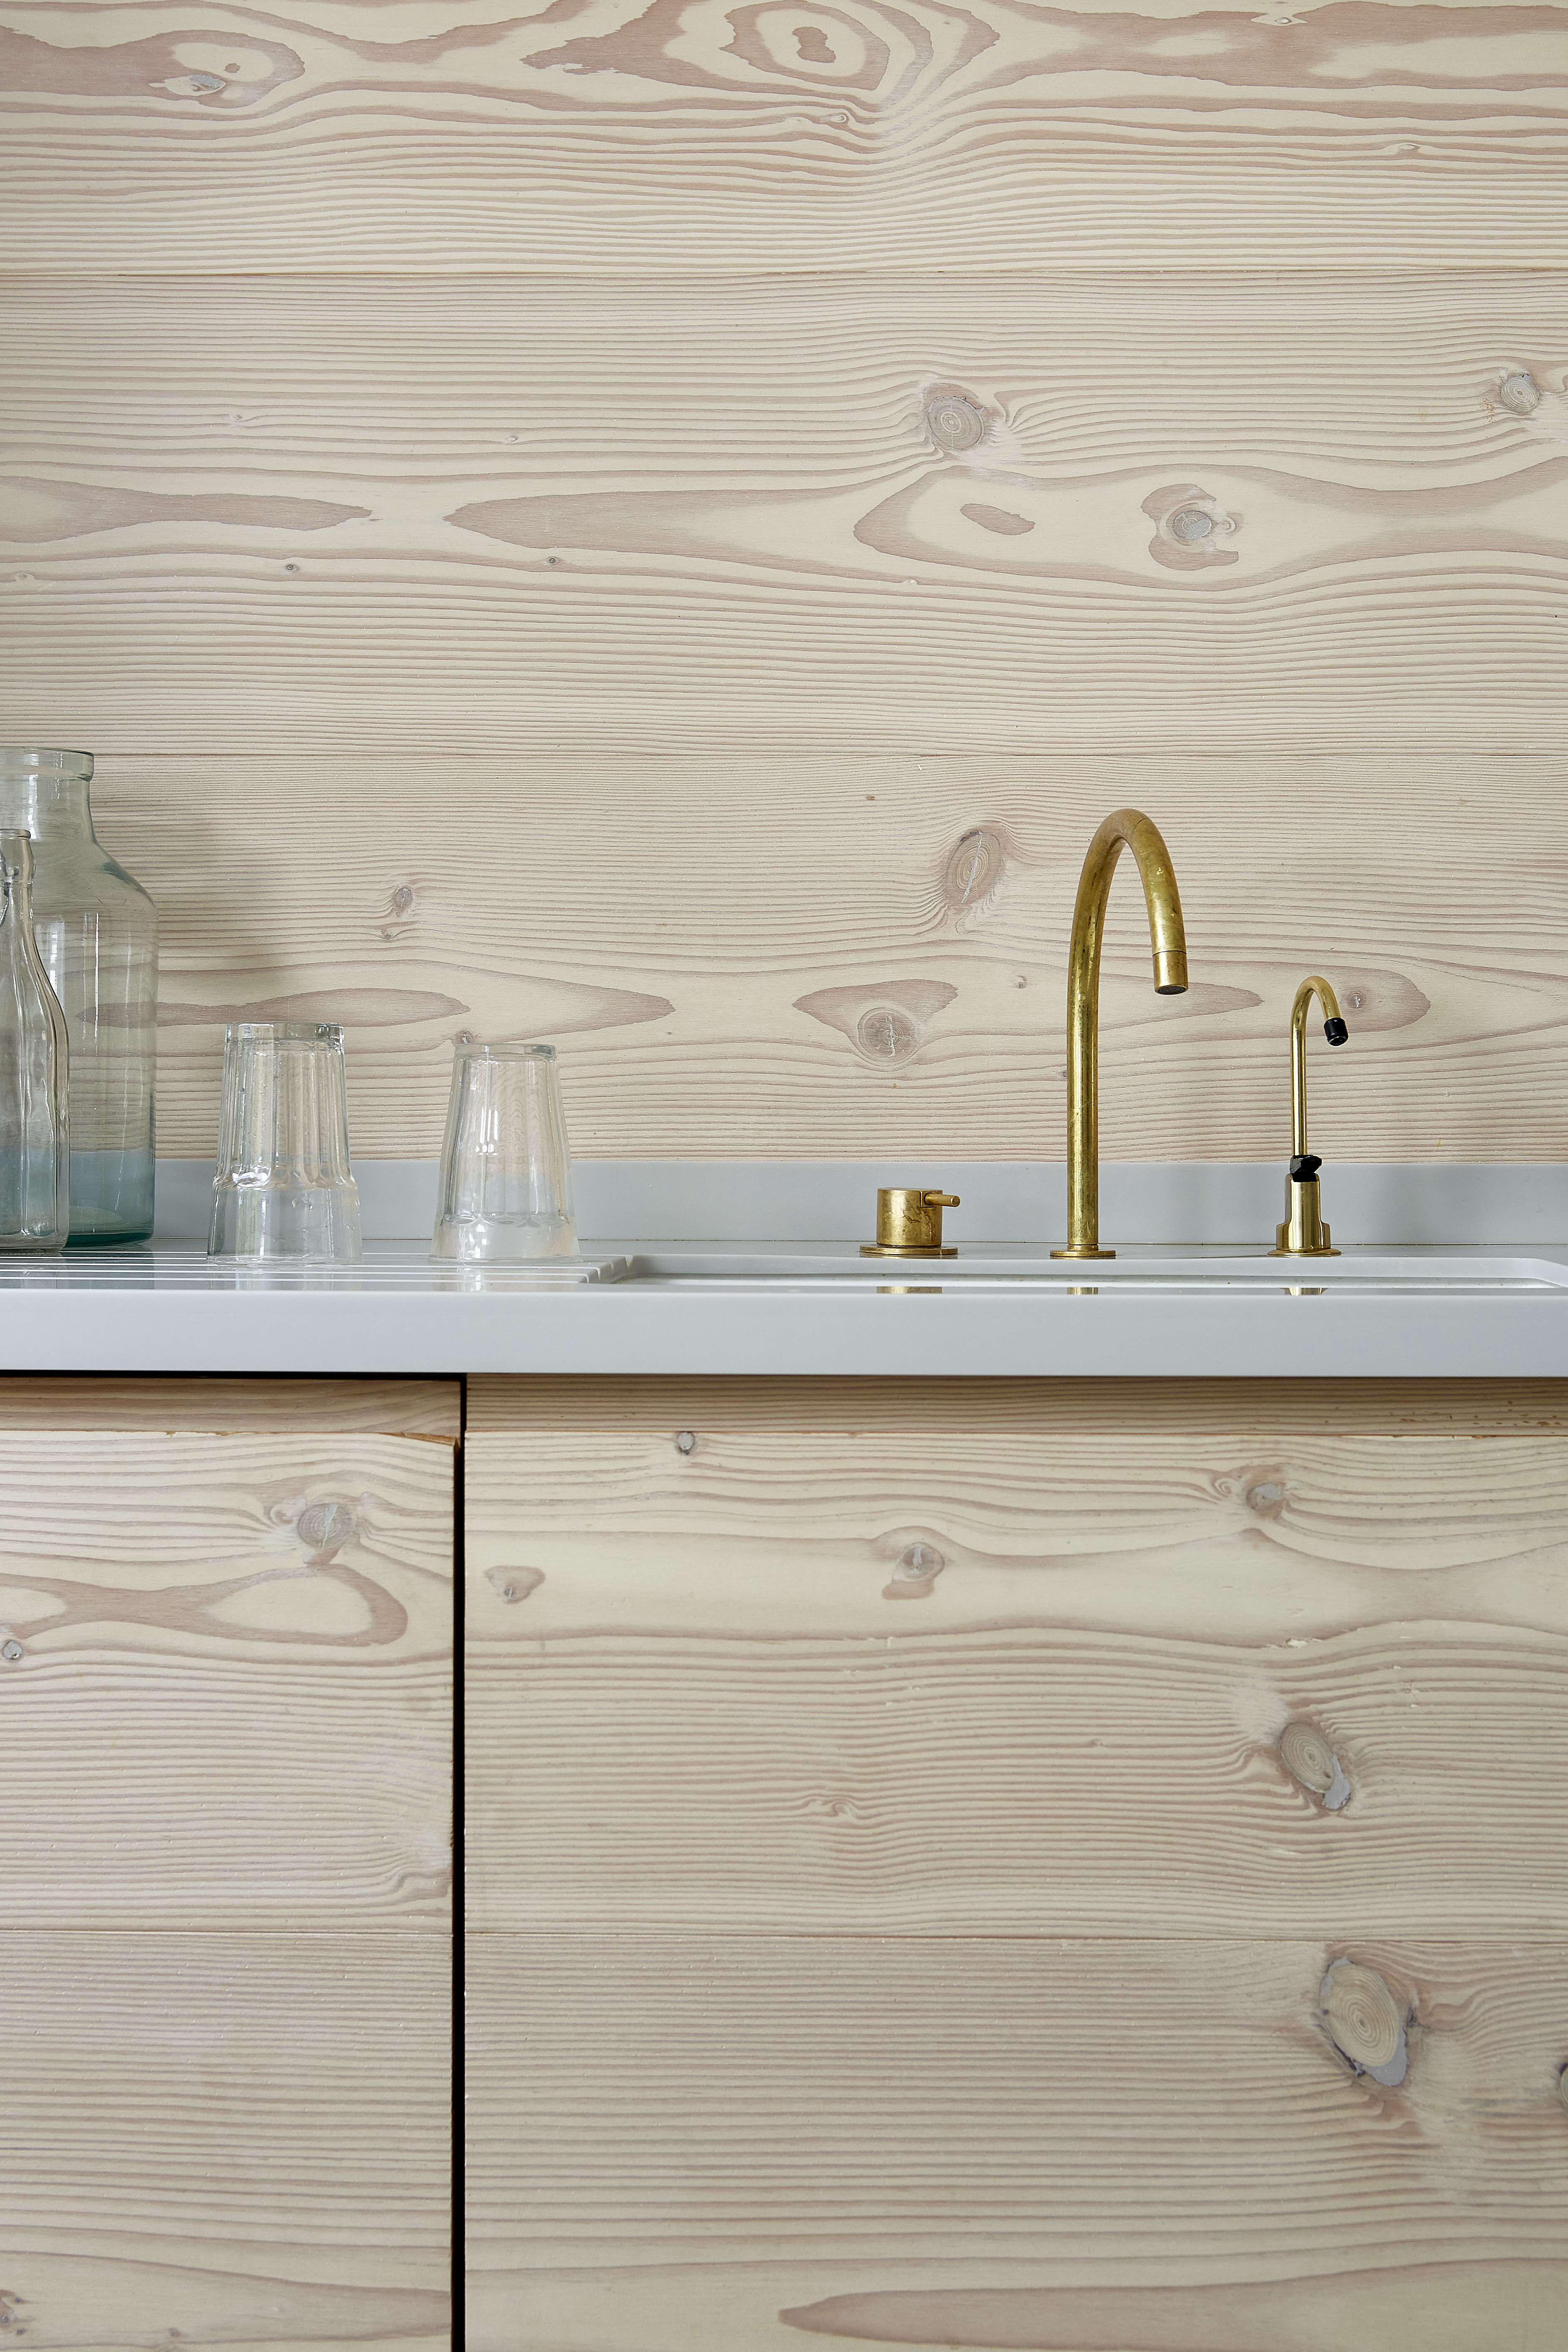 dougls fir cabinets and wall paneling and a brass vola faucet in a scandinavian 11